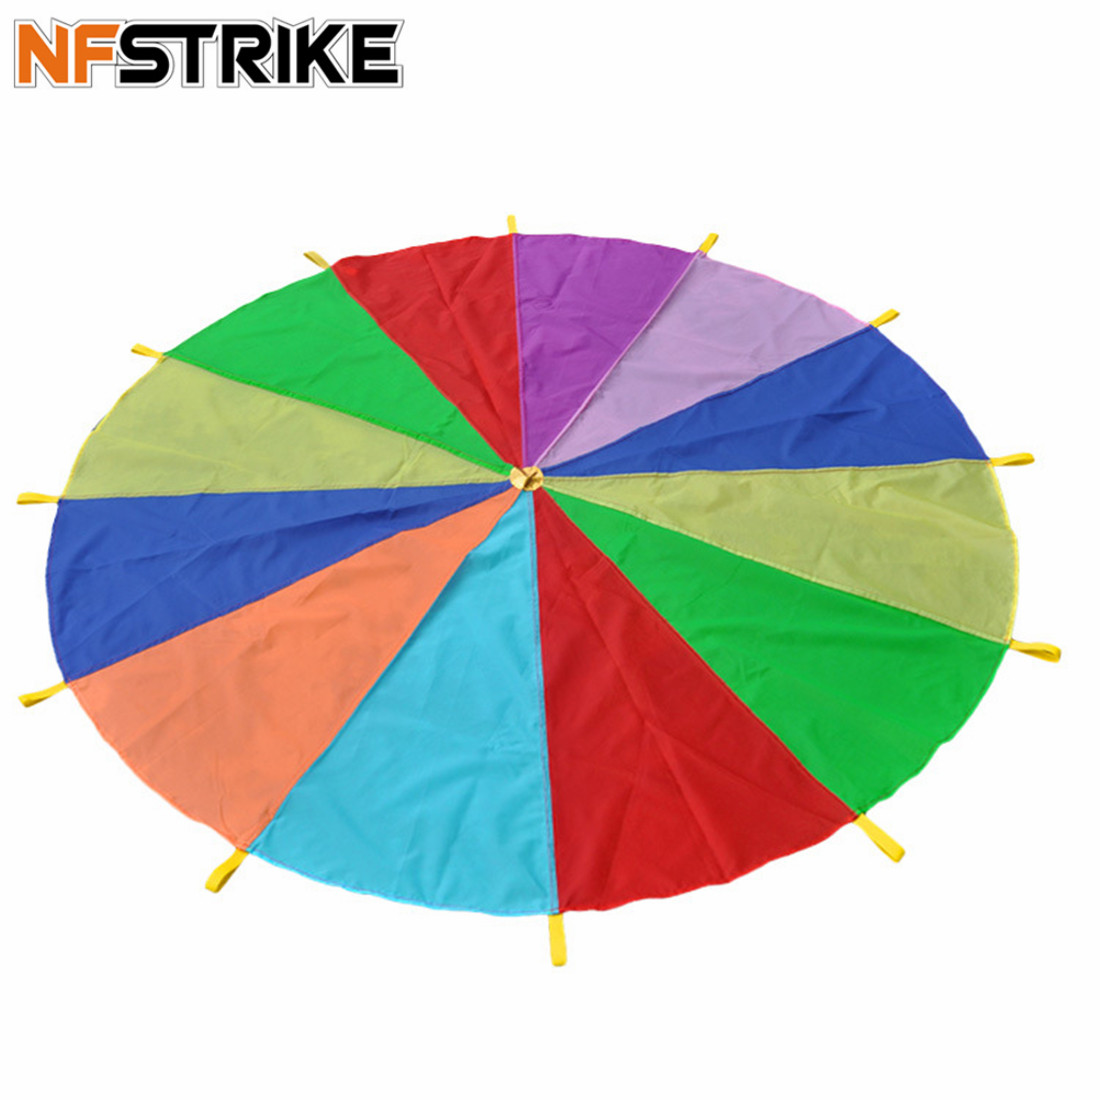 3m Family Rainbow Outdoor Play Parachute Early Childhood Training Equipment For Kids Children Adults Sports Toys - Color Random